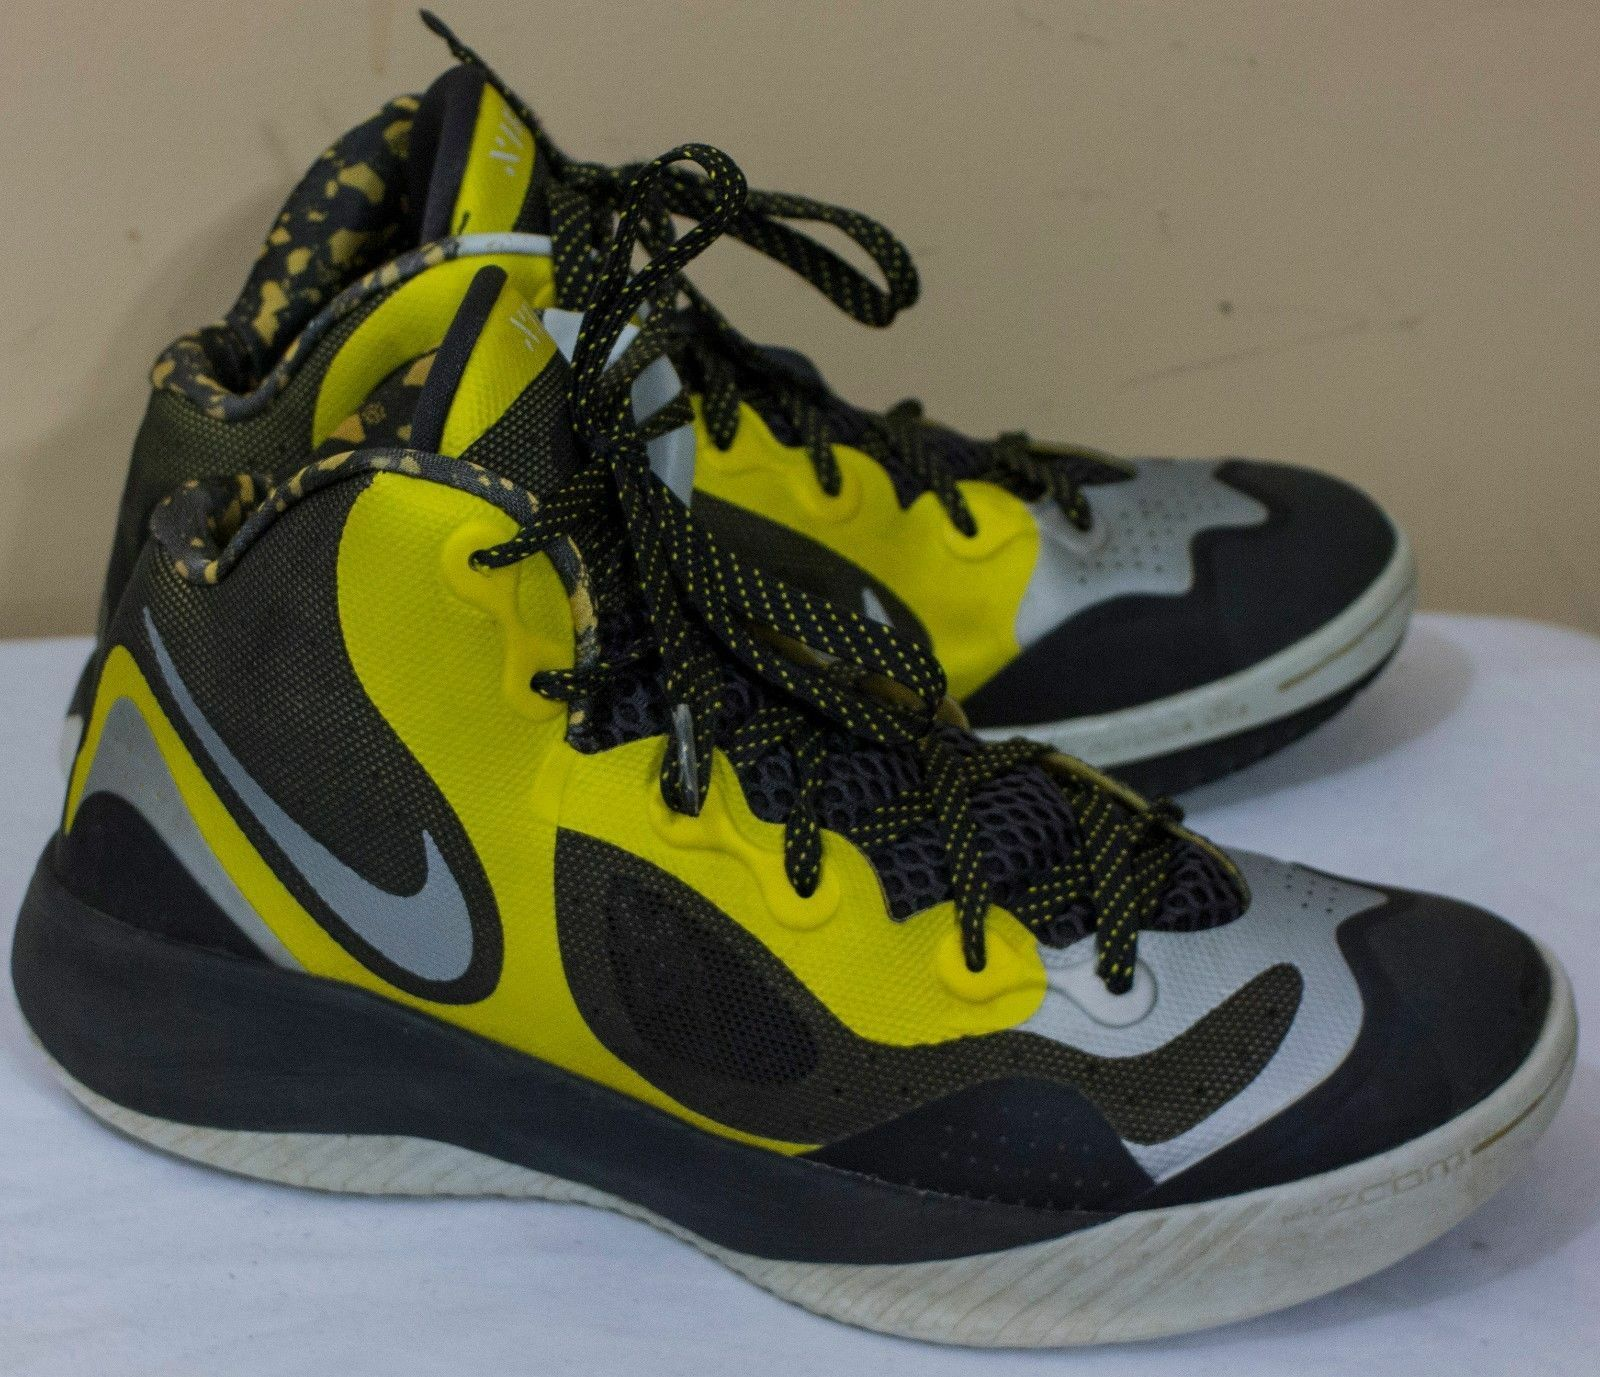 937f4fb6fa4 Nike Zoom Hyperfranchise XD Mens Basketball Shoes 579835 579835 579835 700  Size 8.5 0d0463